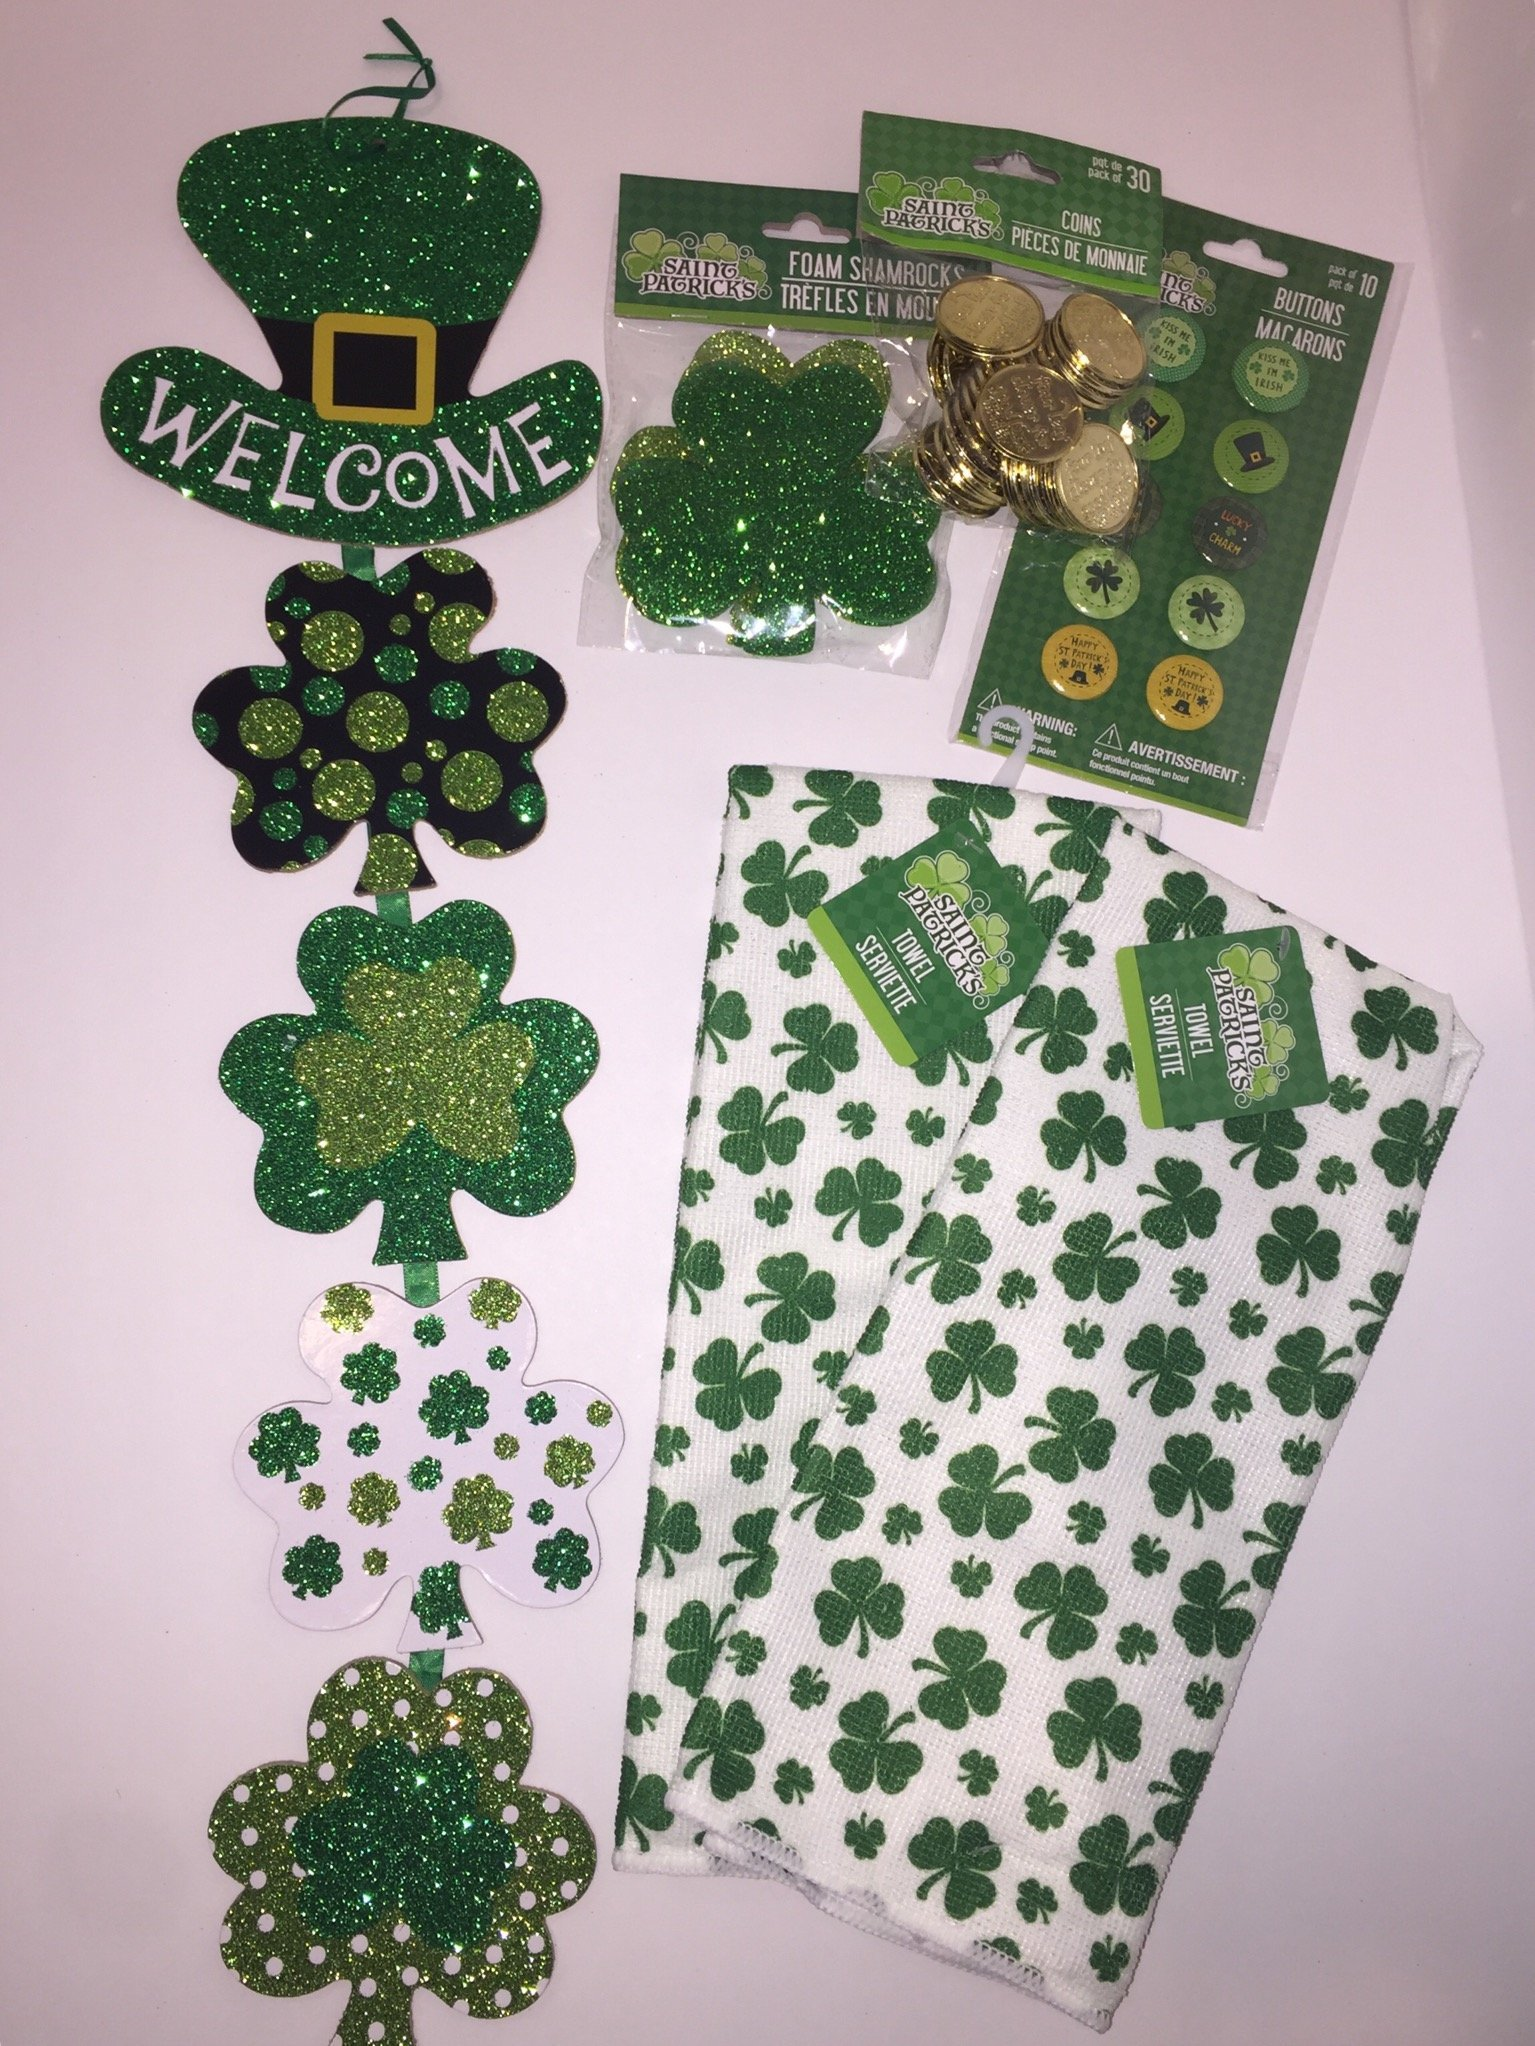 St. Patrick's Day Bundle! 30 Lucky Gold Coins, 2 Shamrock Kitchen Towels, Wood Welcome Glittery Wall Hanging, 10 Holiday Buttons/Pins, 12 Fun Foam Shapes